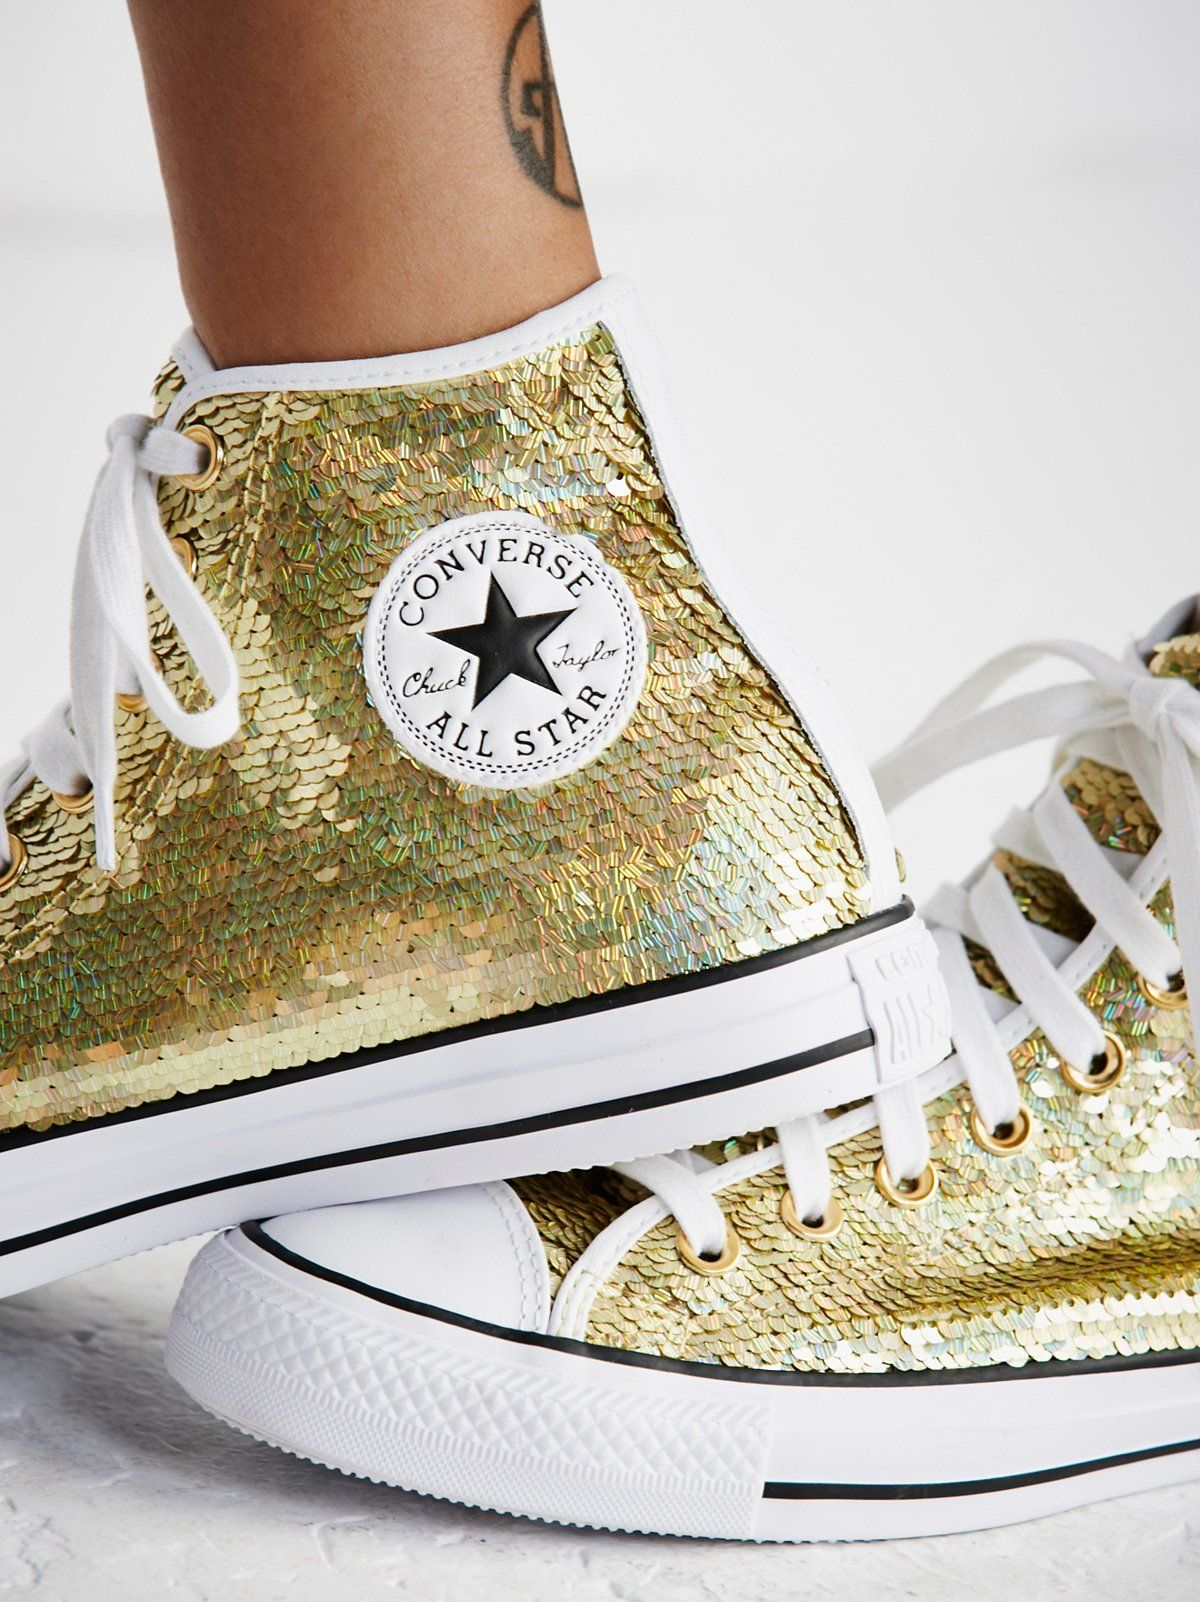 275e0 0f383 gold sequin converse sneakers pinterest.com new lower ... d06d202c0